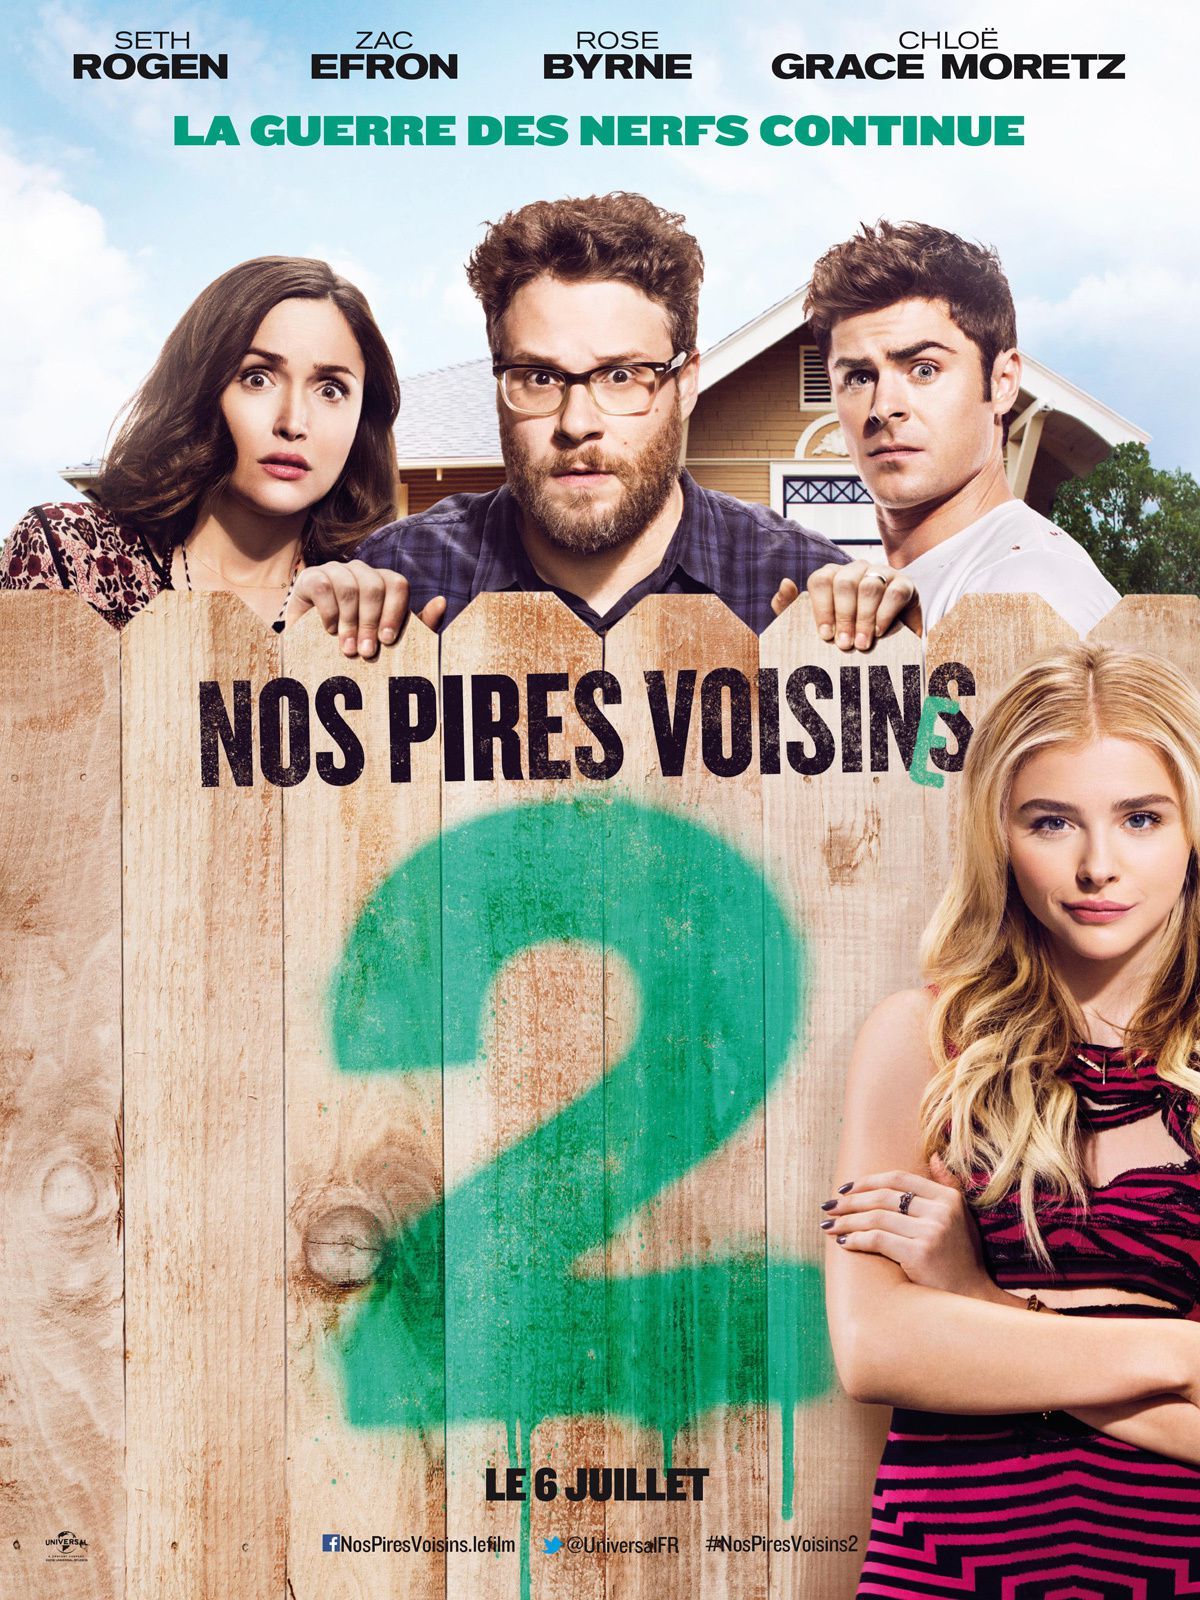 Nos pires voisins 2 - Film review